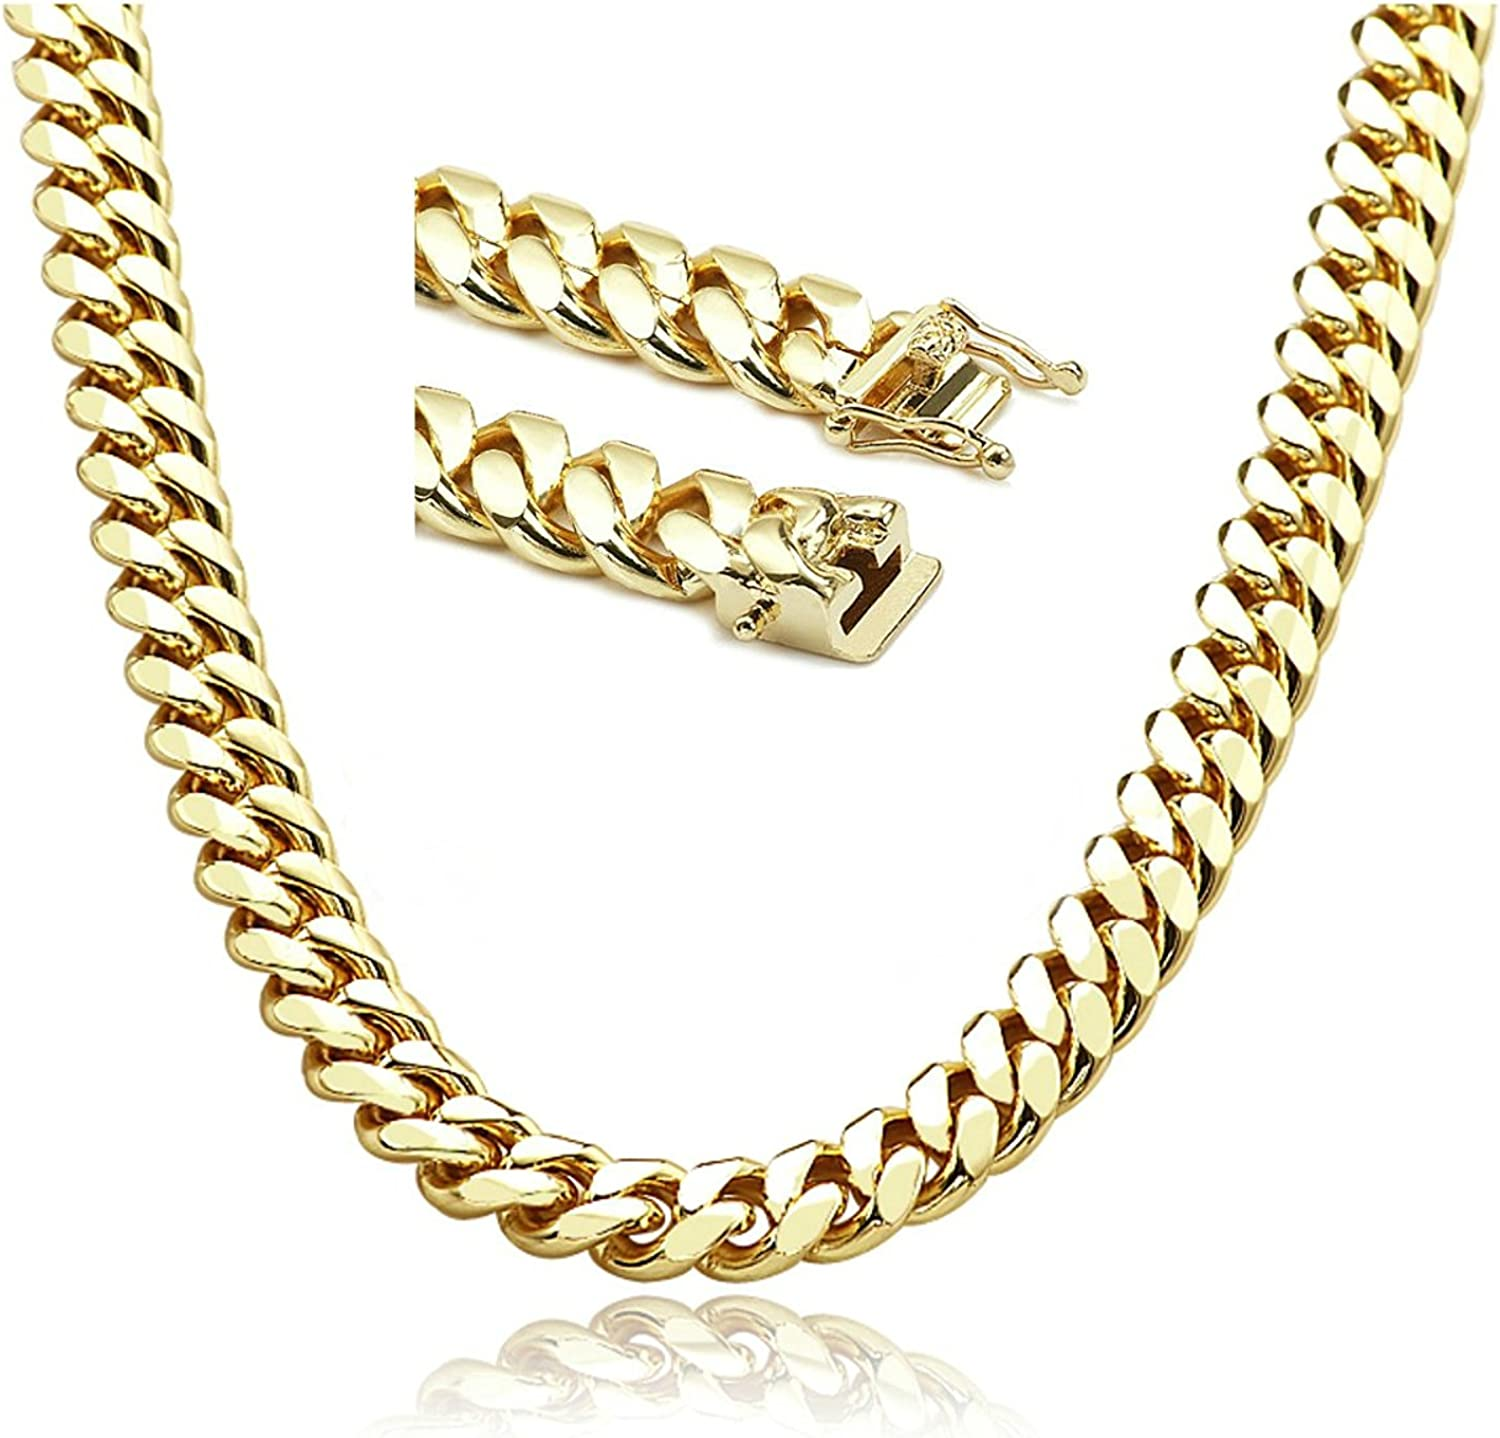 Hollywood Jewelry Gold Chain Necklace 14mm 24karat Diamond Cut Smooth Cuban Link With A Warranty Of A Lifetiime Usa Made 22 Amazon Com